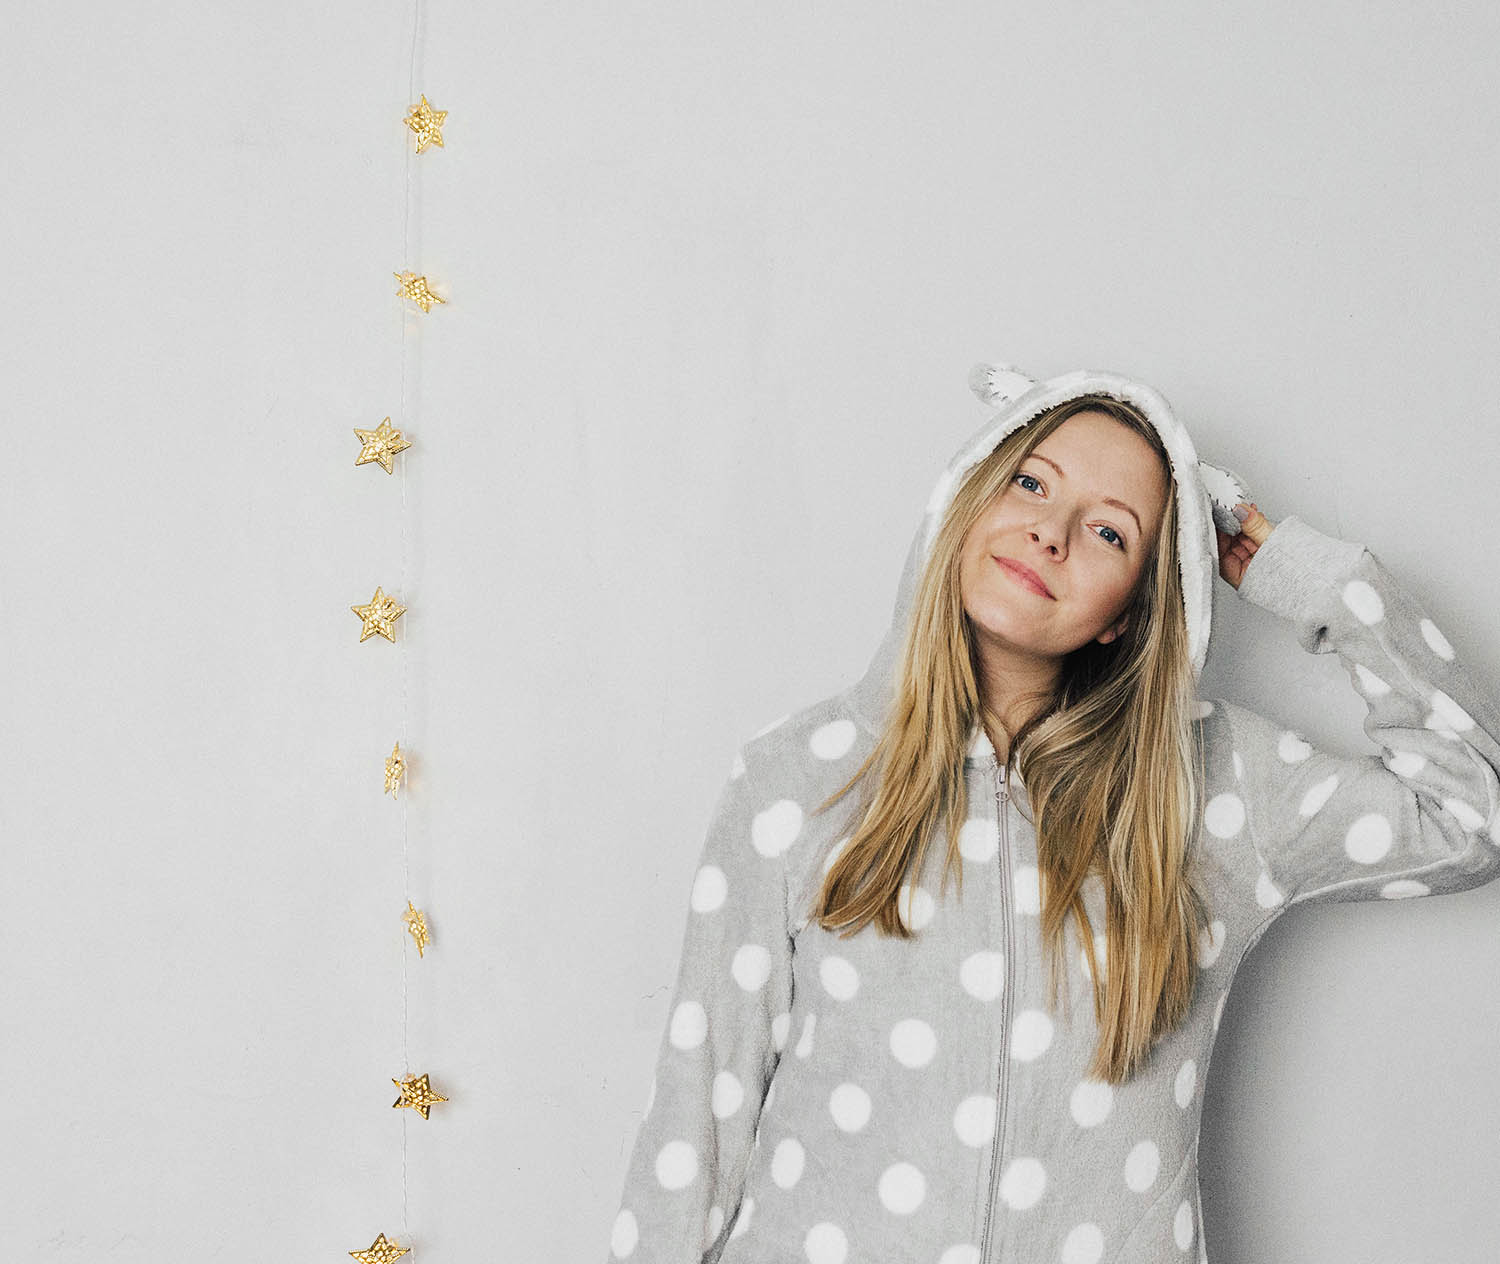 Onesie with Ears from Hunkemöller - Sanna Eriksson